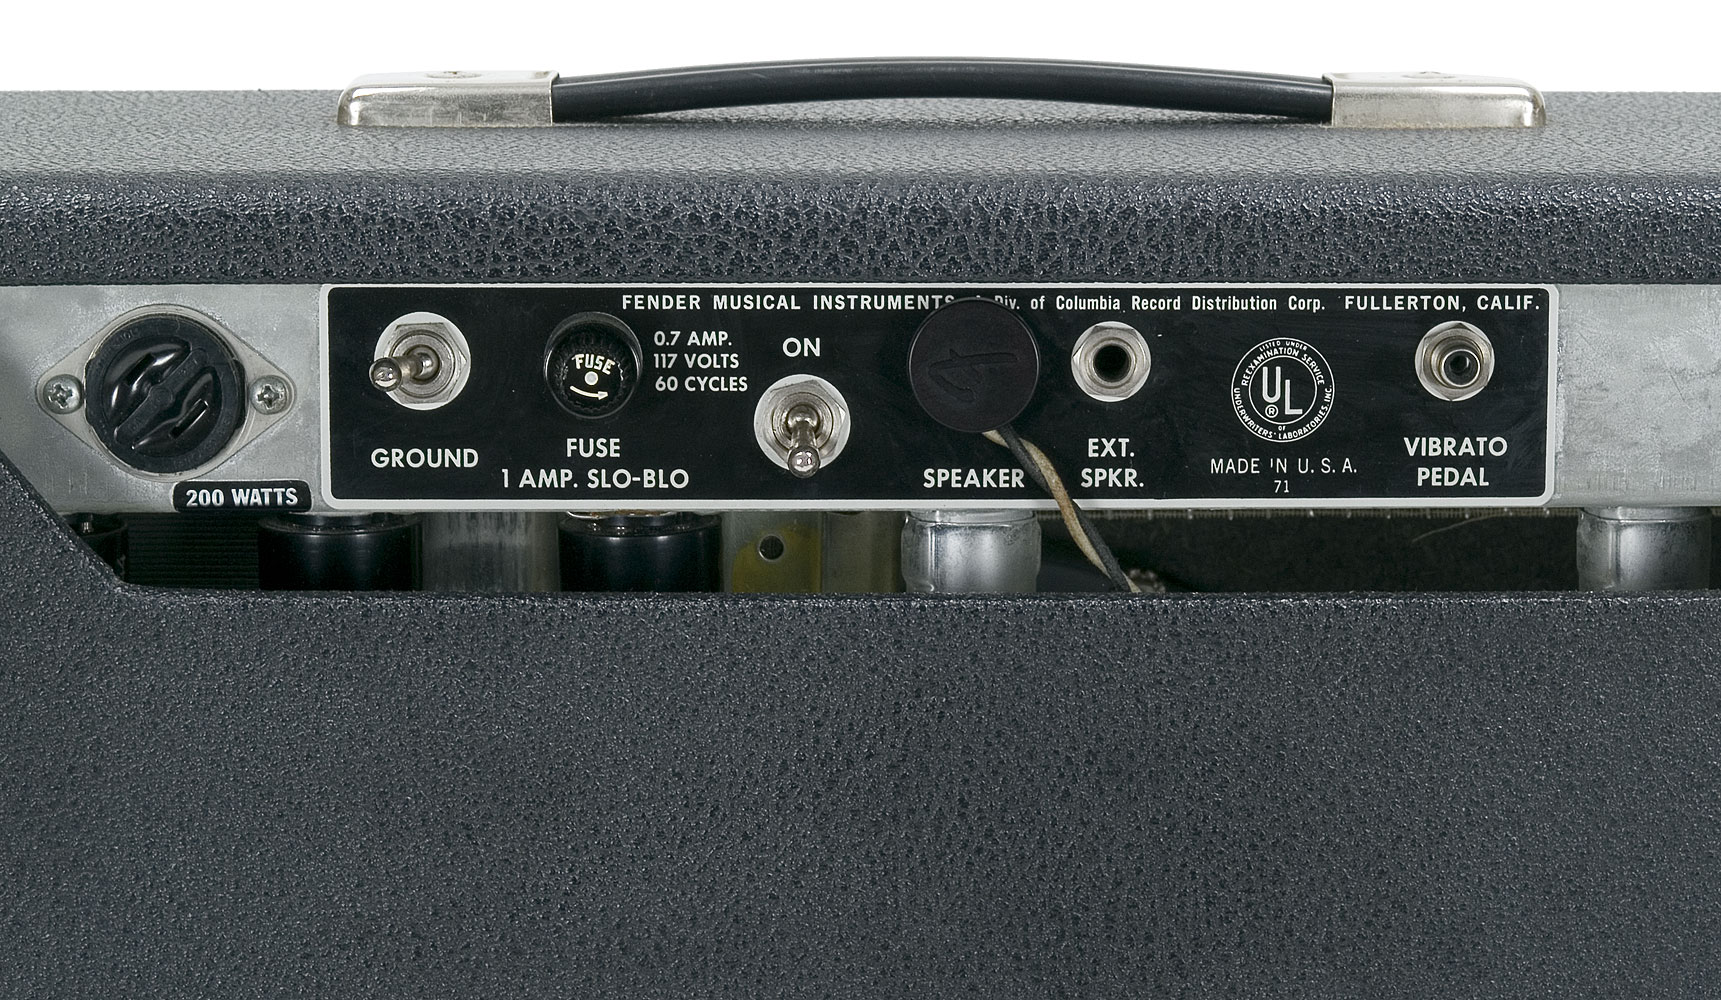 The Back Panel Of These Amps Had A 1 4 Plug For Speaker And Another Input An External They Were Also Equipped With Inputs